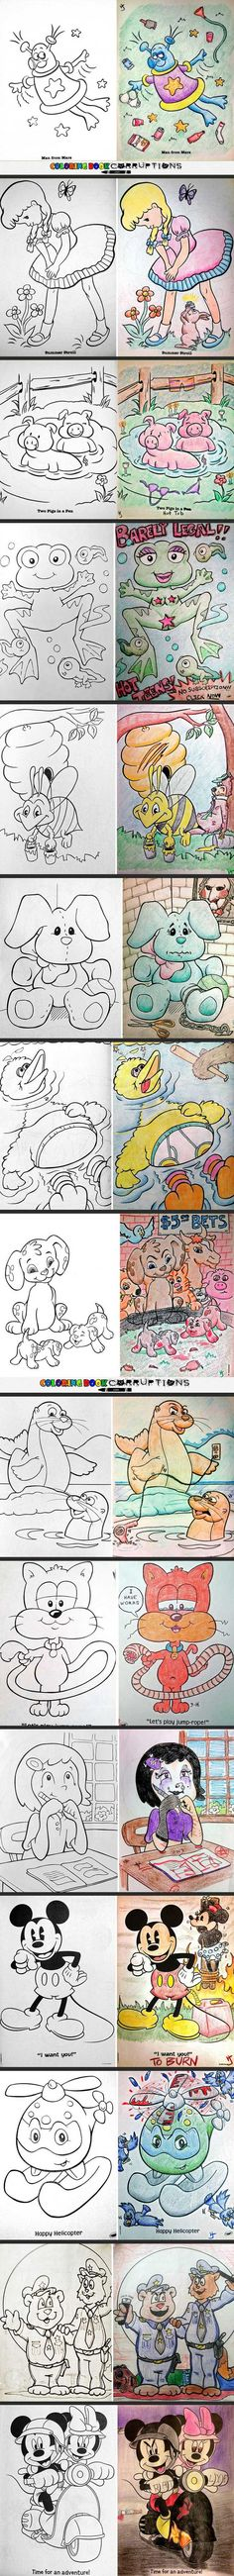 Coloring Book Corruptions, Part II